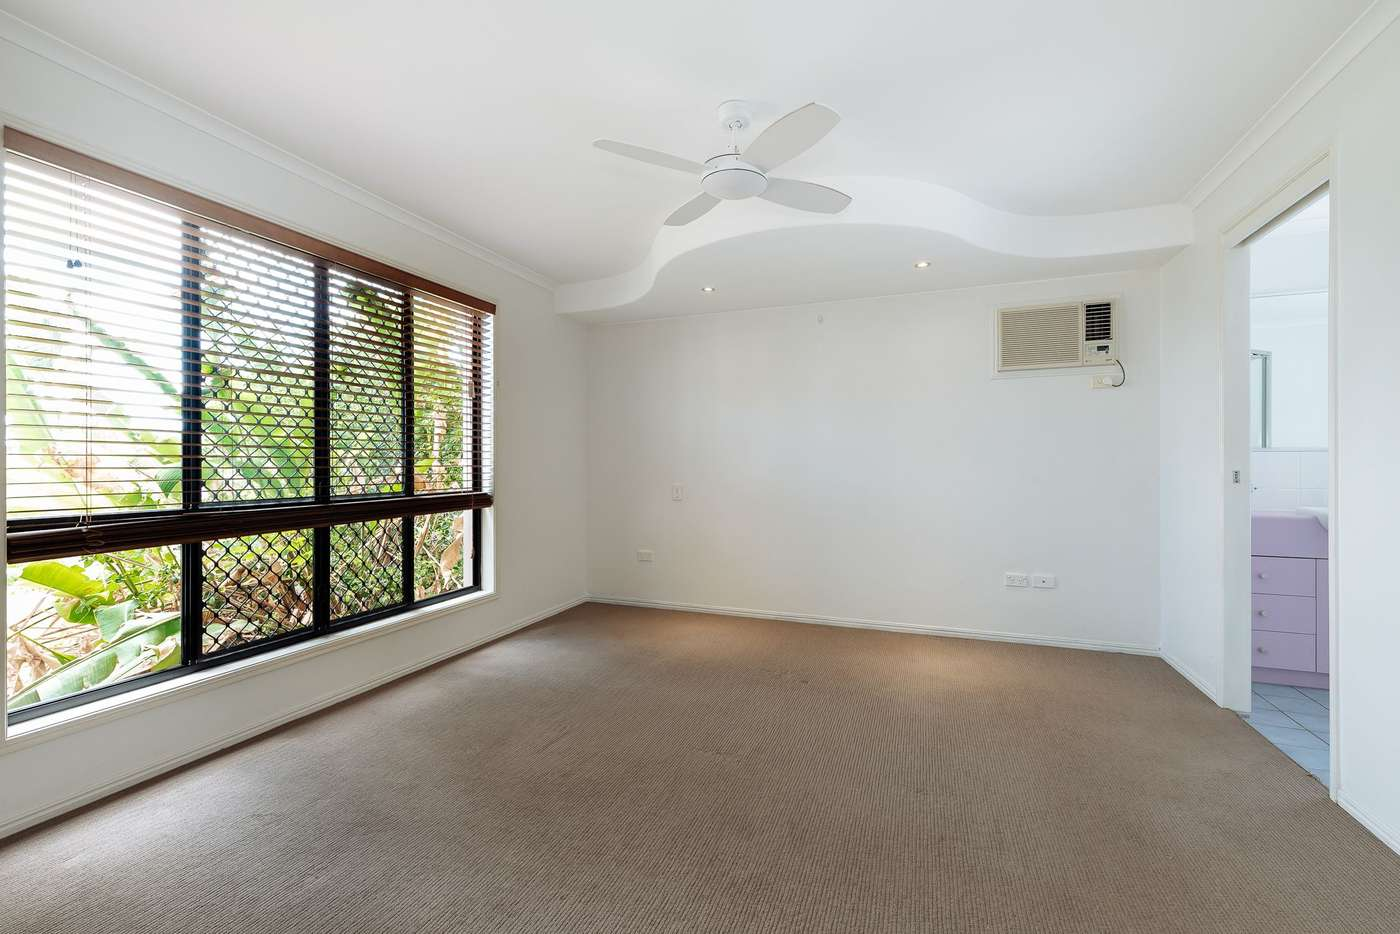 Sixth view of Homely house listing, 15 Sandringham Close, Telina QLD 4680